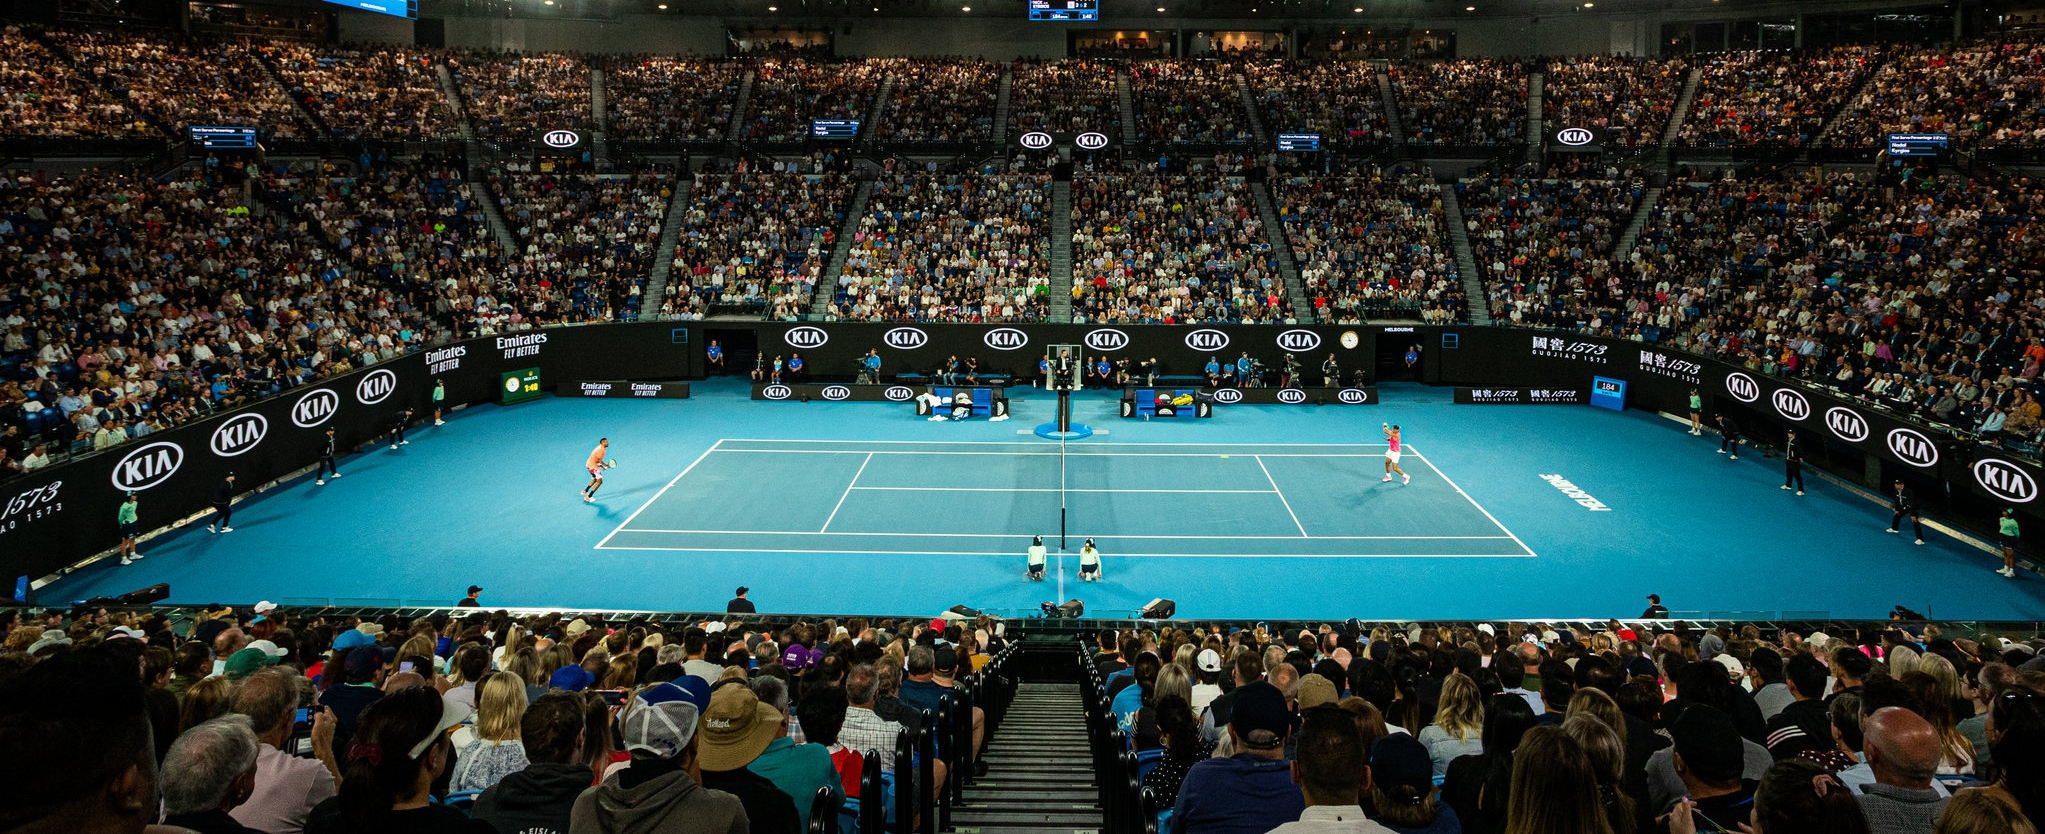 Us open tennis dates in Melbourne